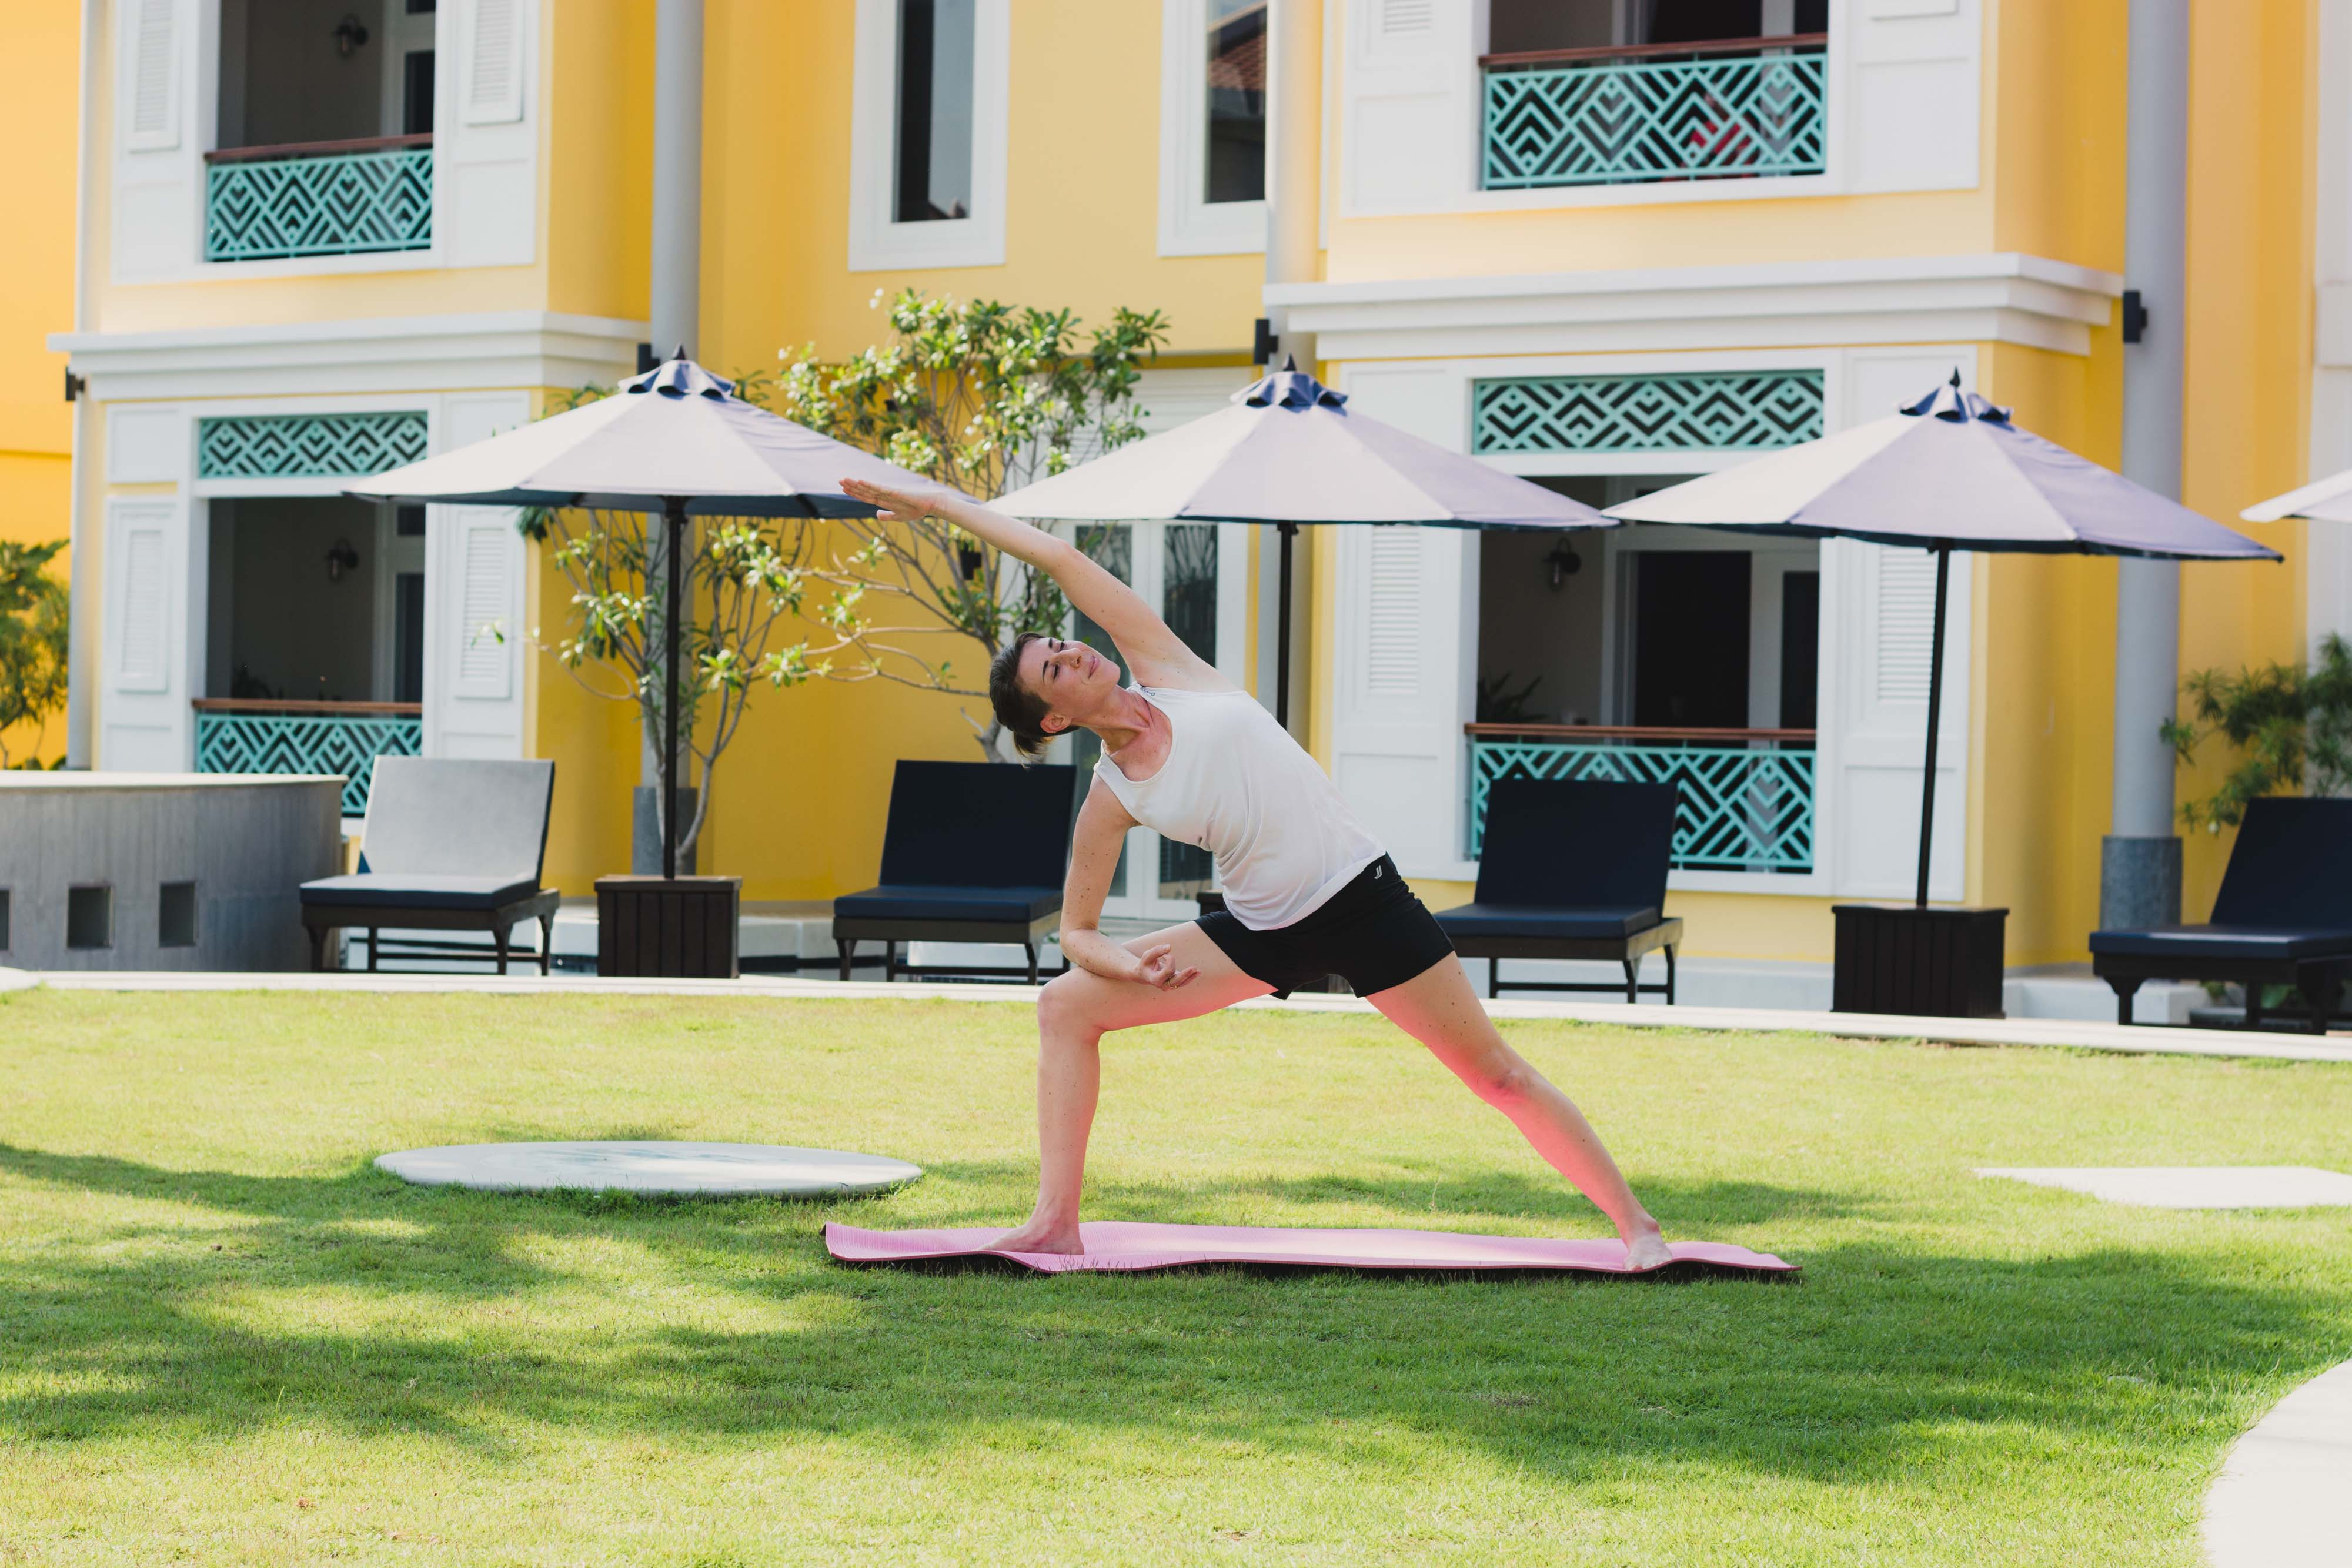 5 Days 4 Nights Luxury Yoga Retreat in Siem Reap, Cambodia